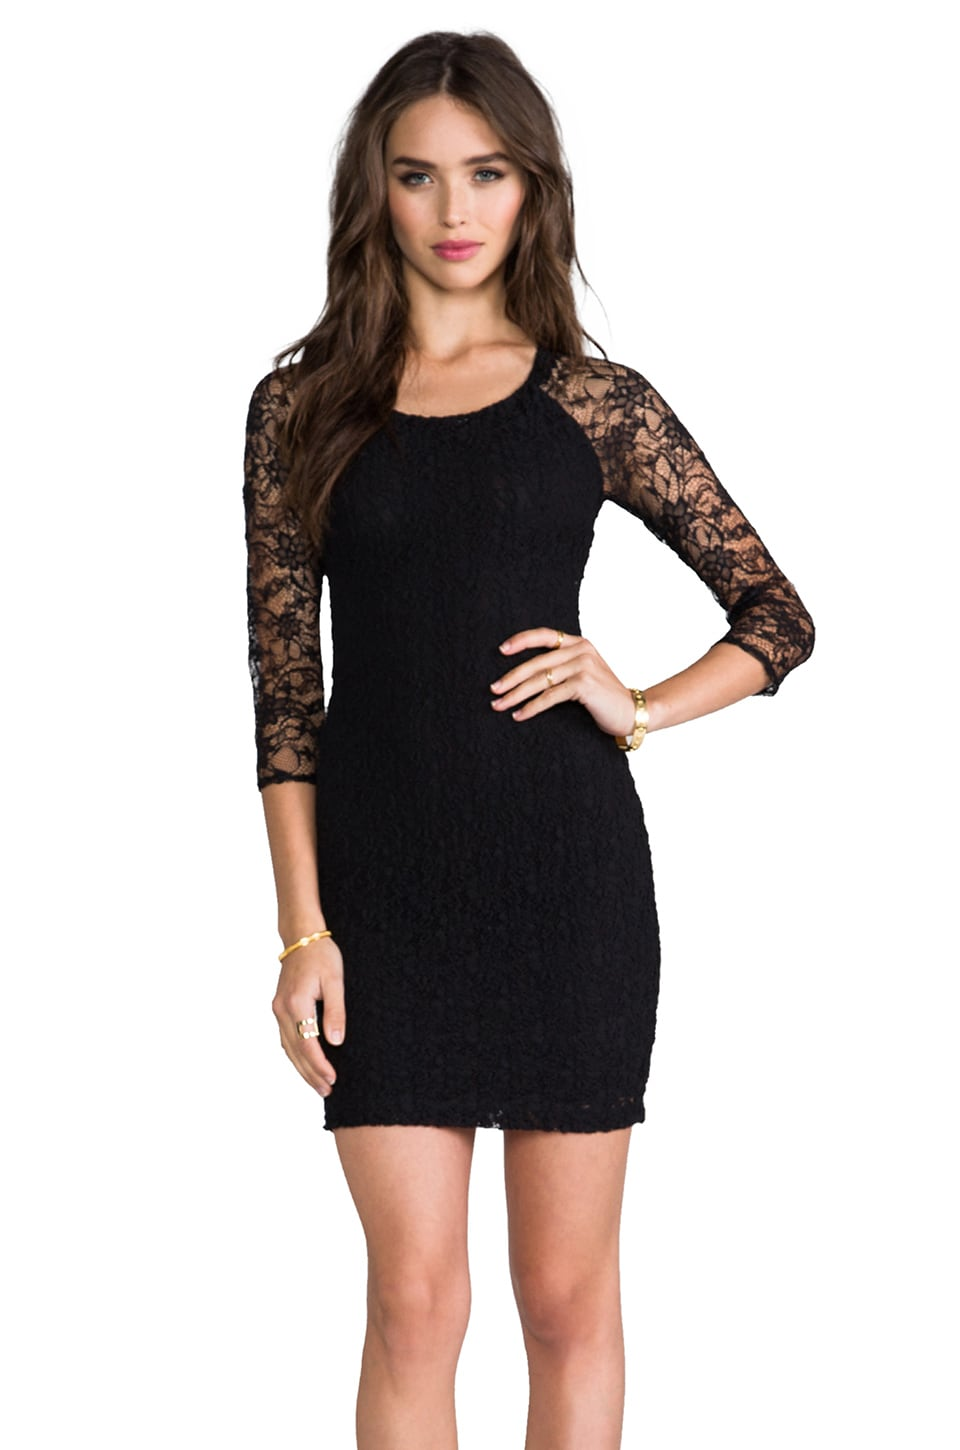 Bailey 44 Popcorn Dress in Black